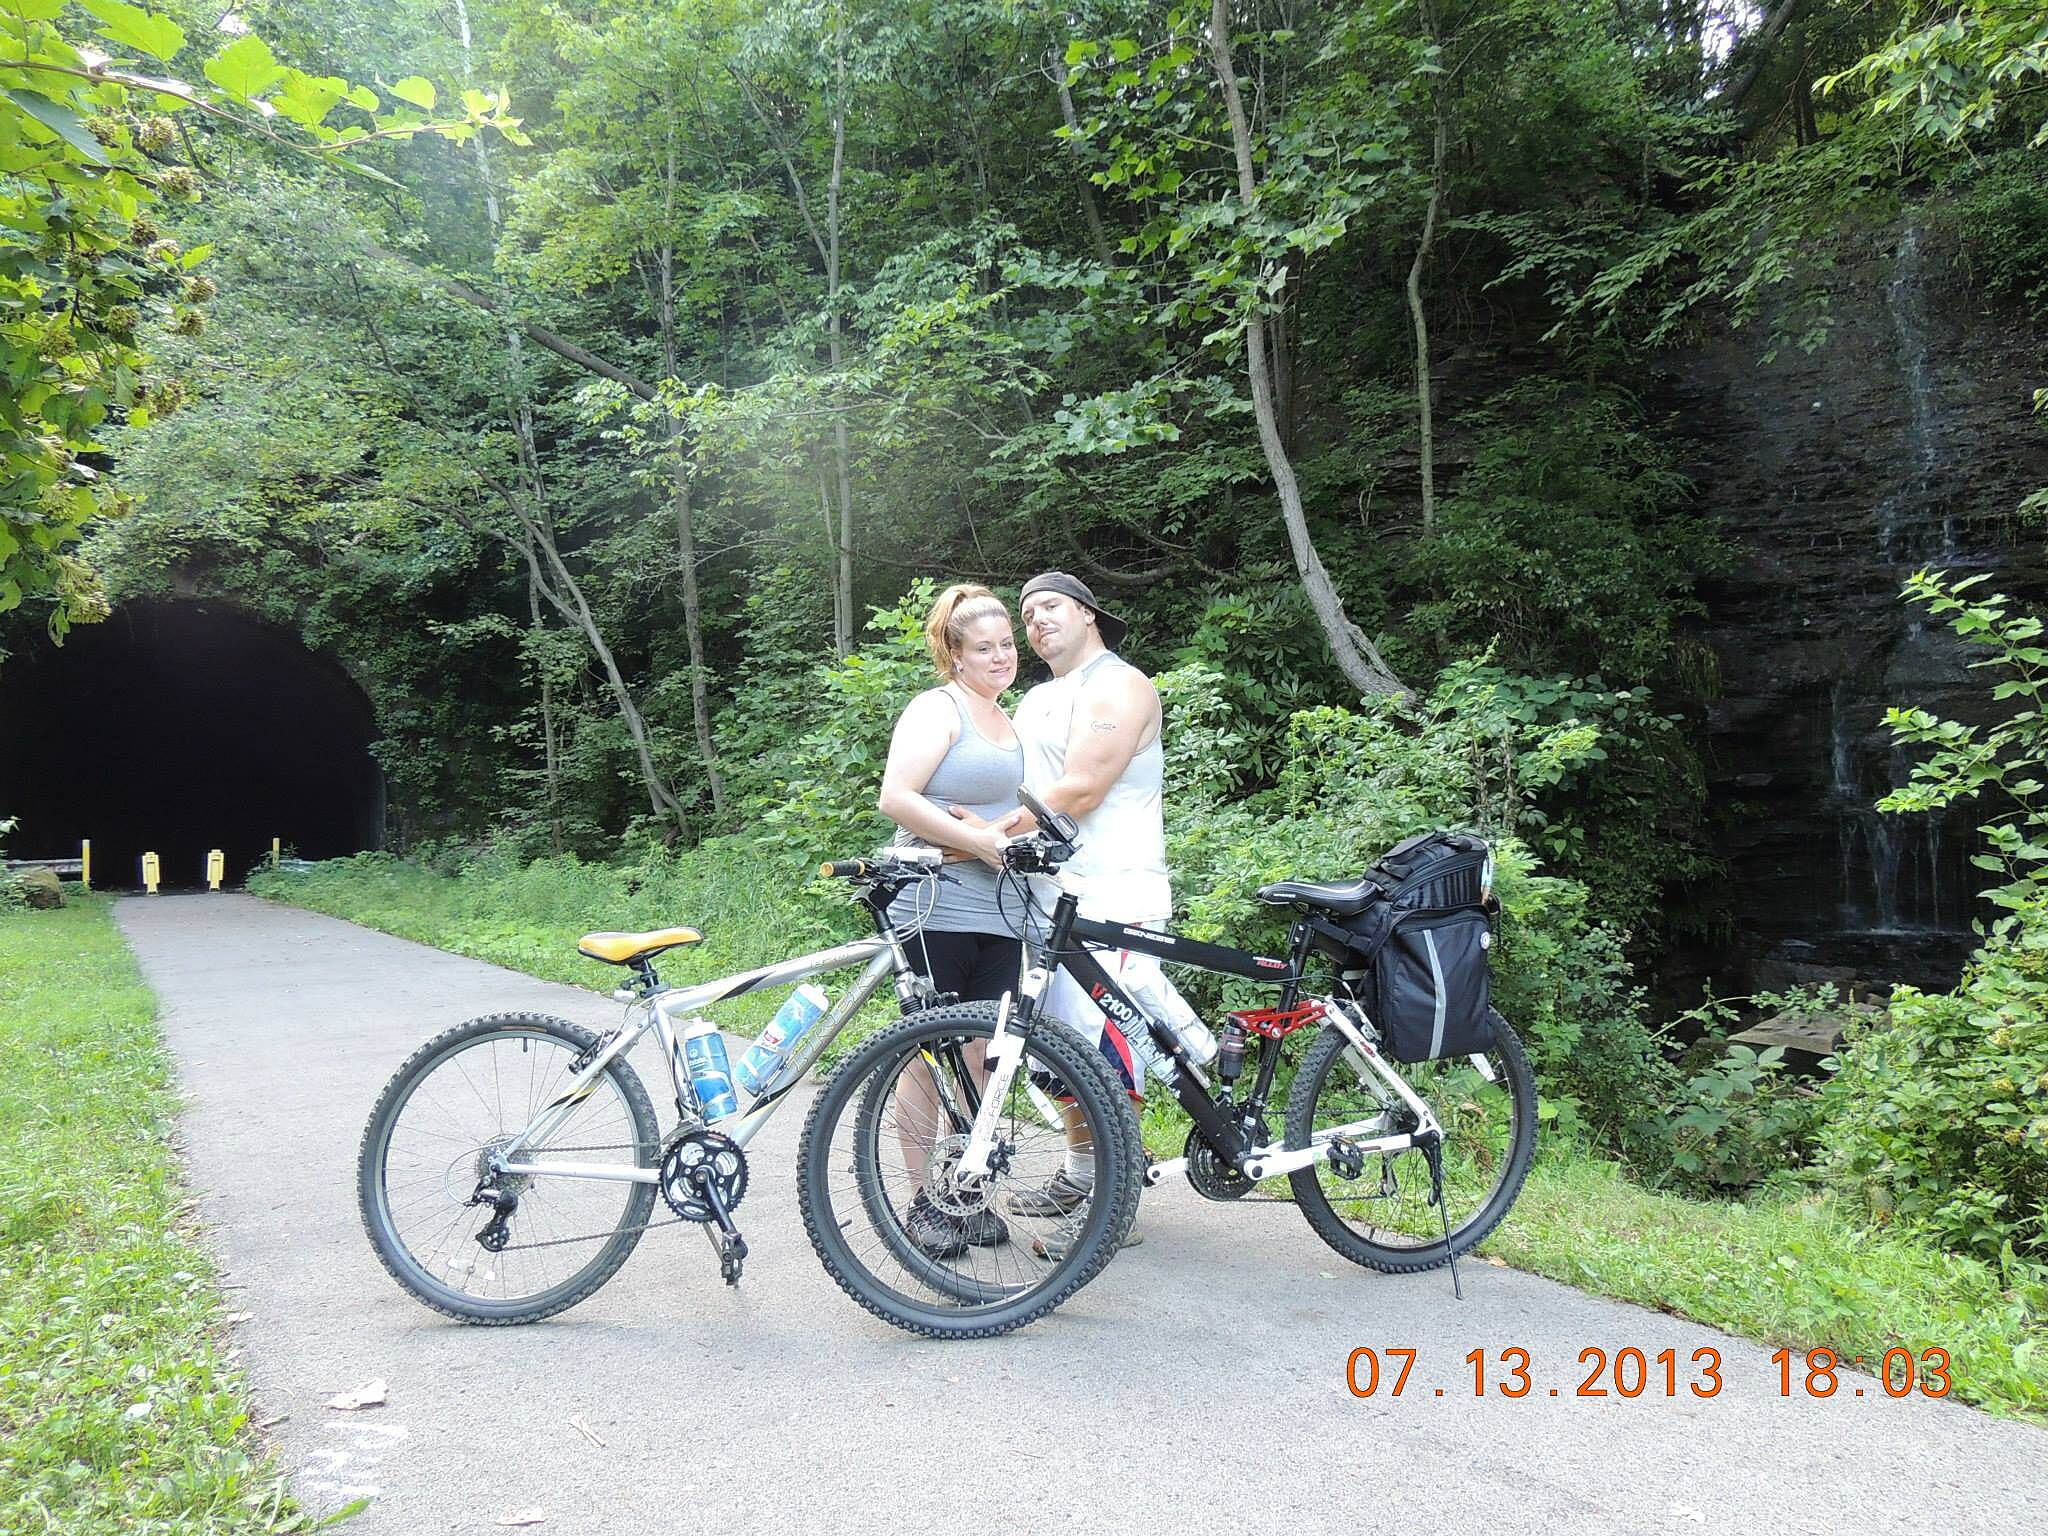 Allegheny River Trail waterfall and tunnel  Stop at the southern side of the kennerdale tunnel for a couples pic with the tunnel and waterfall while riding from Emelton to Kennerdale PA on the Allegheny River trail system